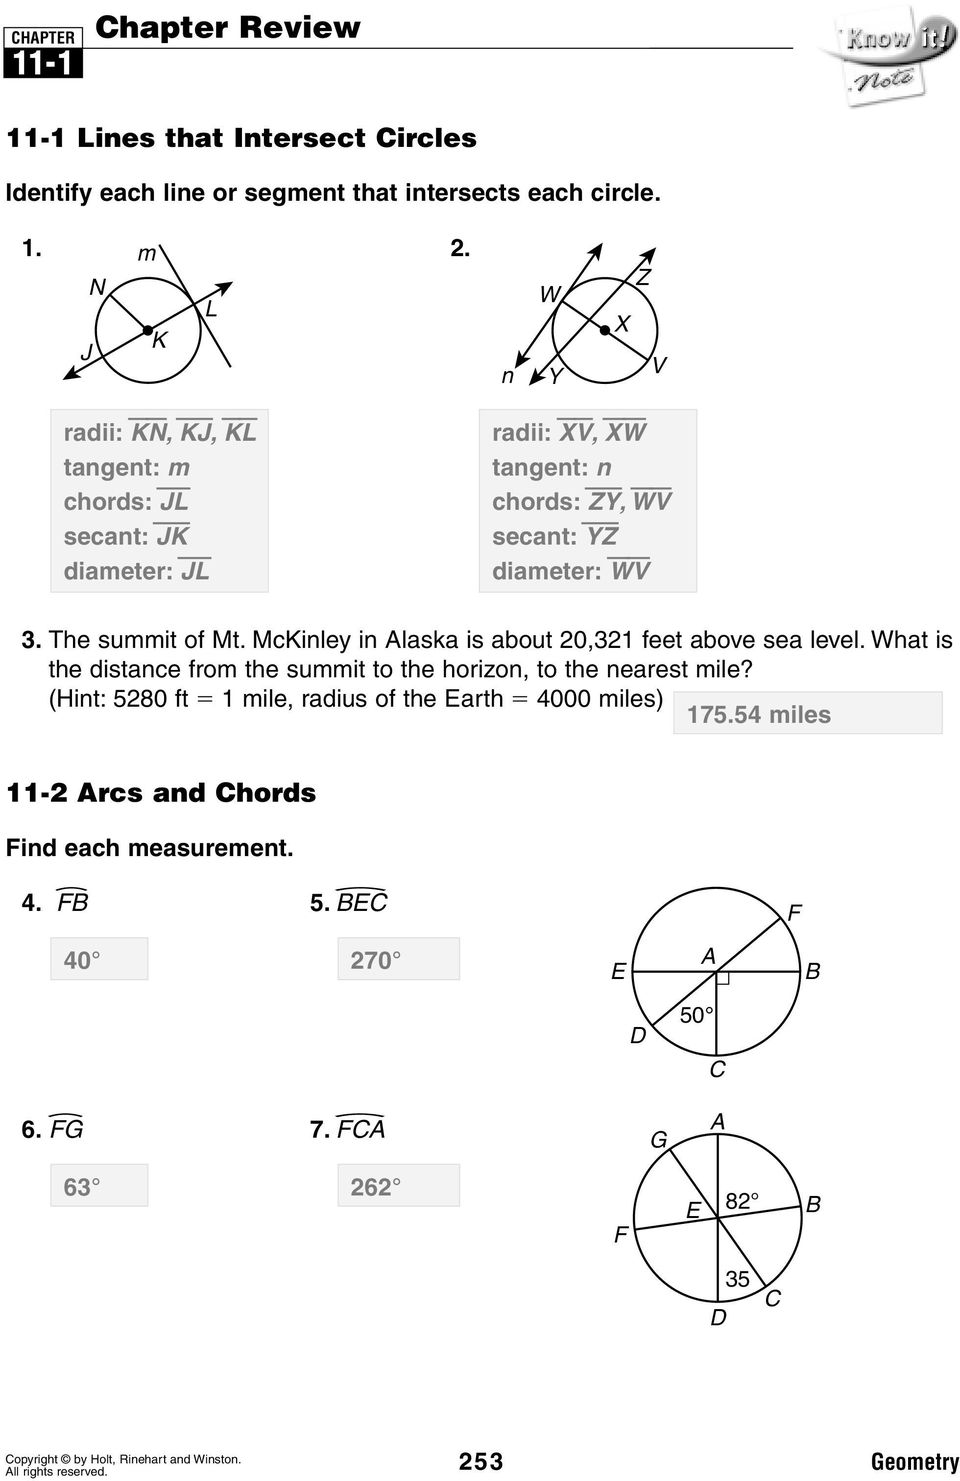 lesson 11-1 problem solving lines that intersect circles answers